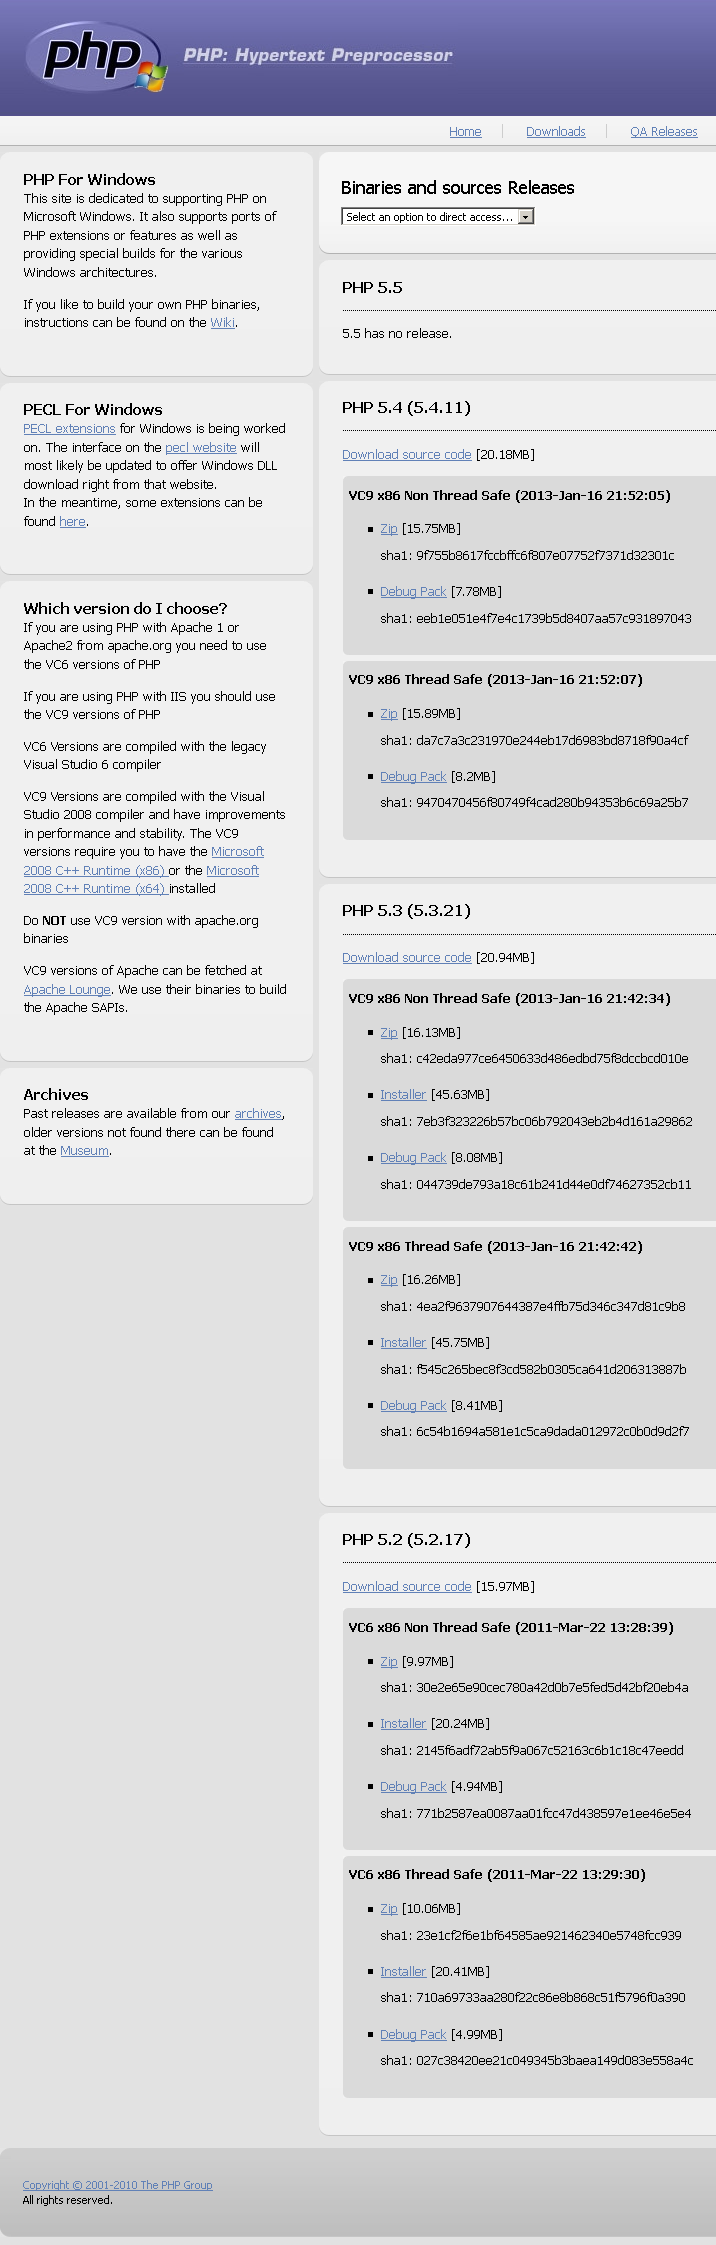 Windows PHP download page